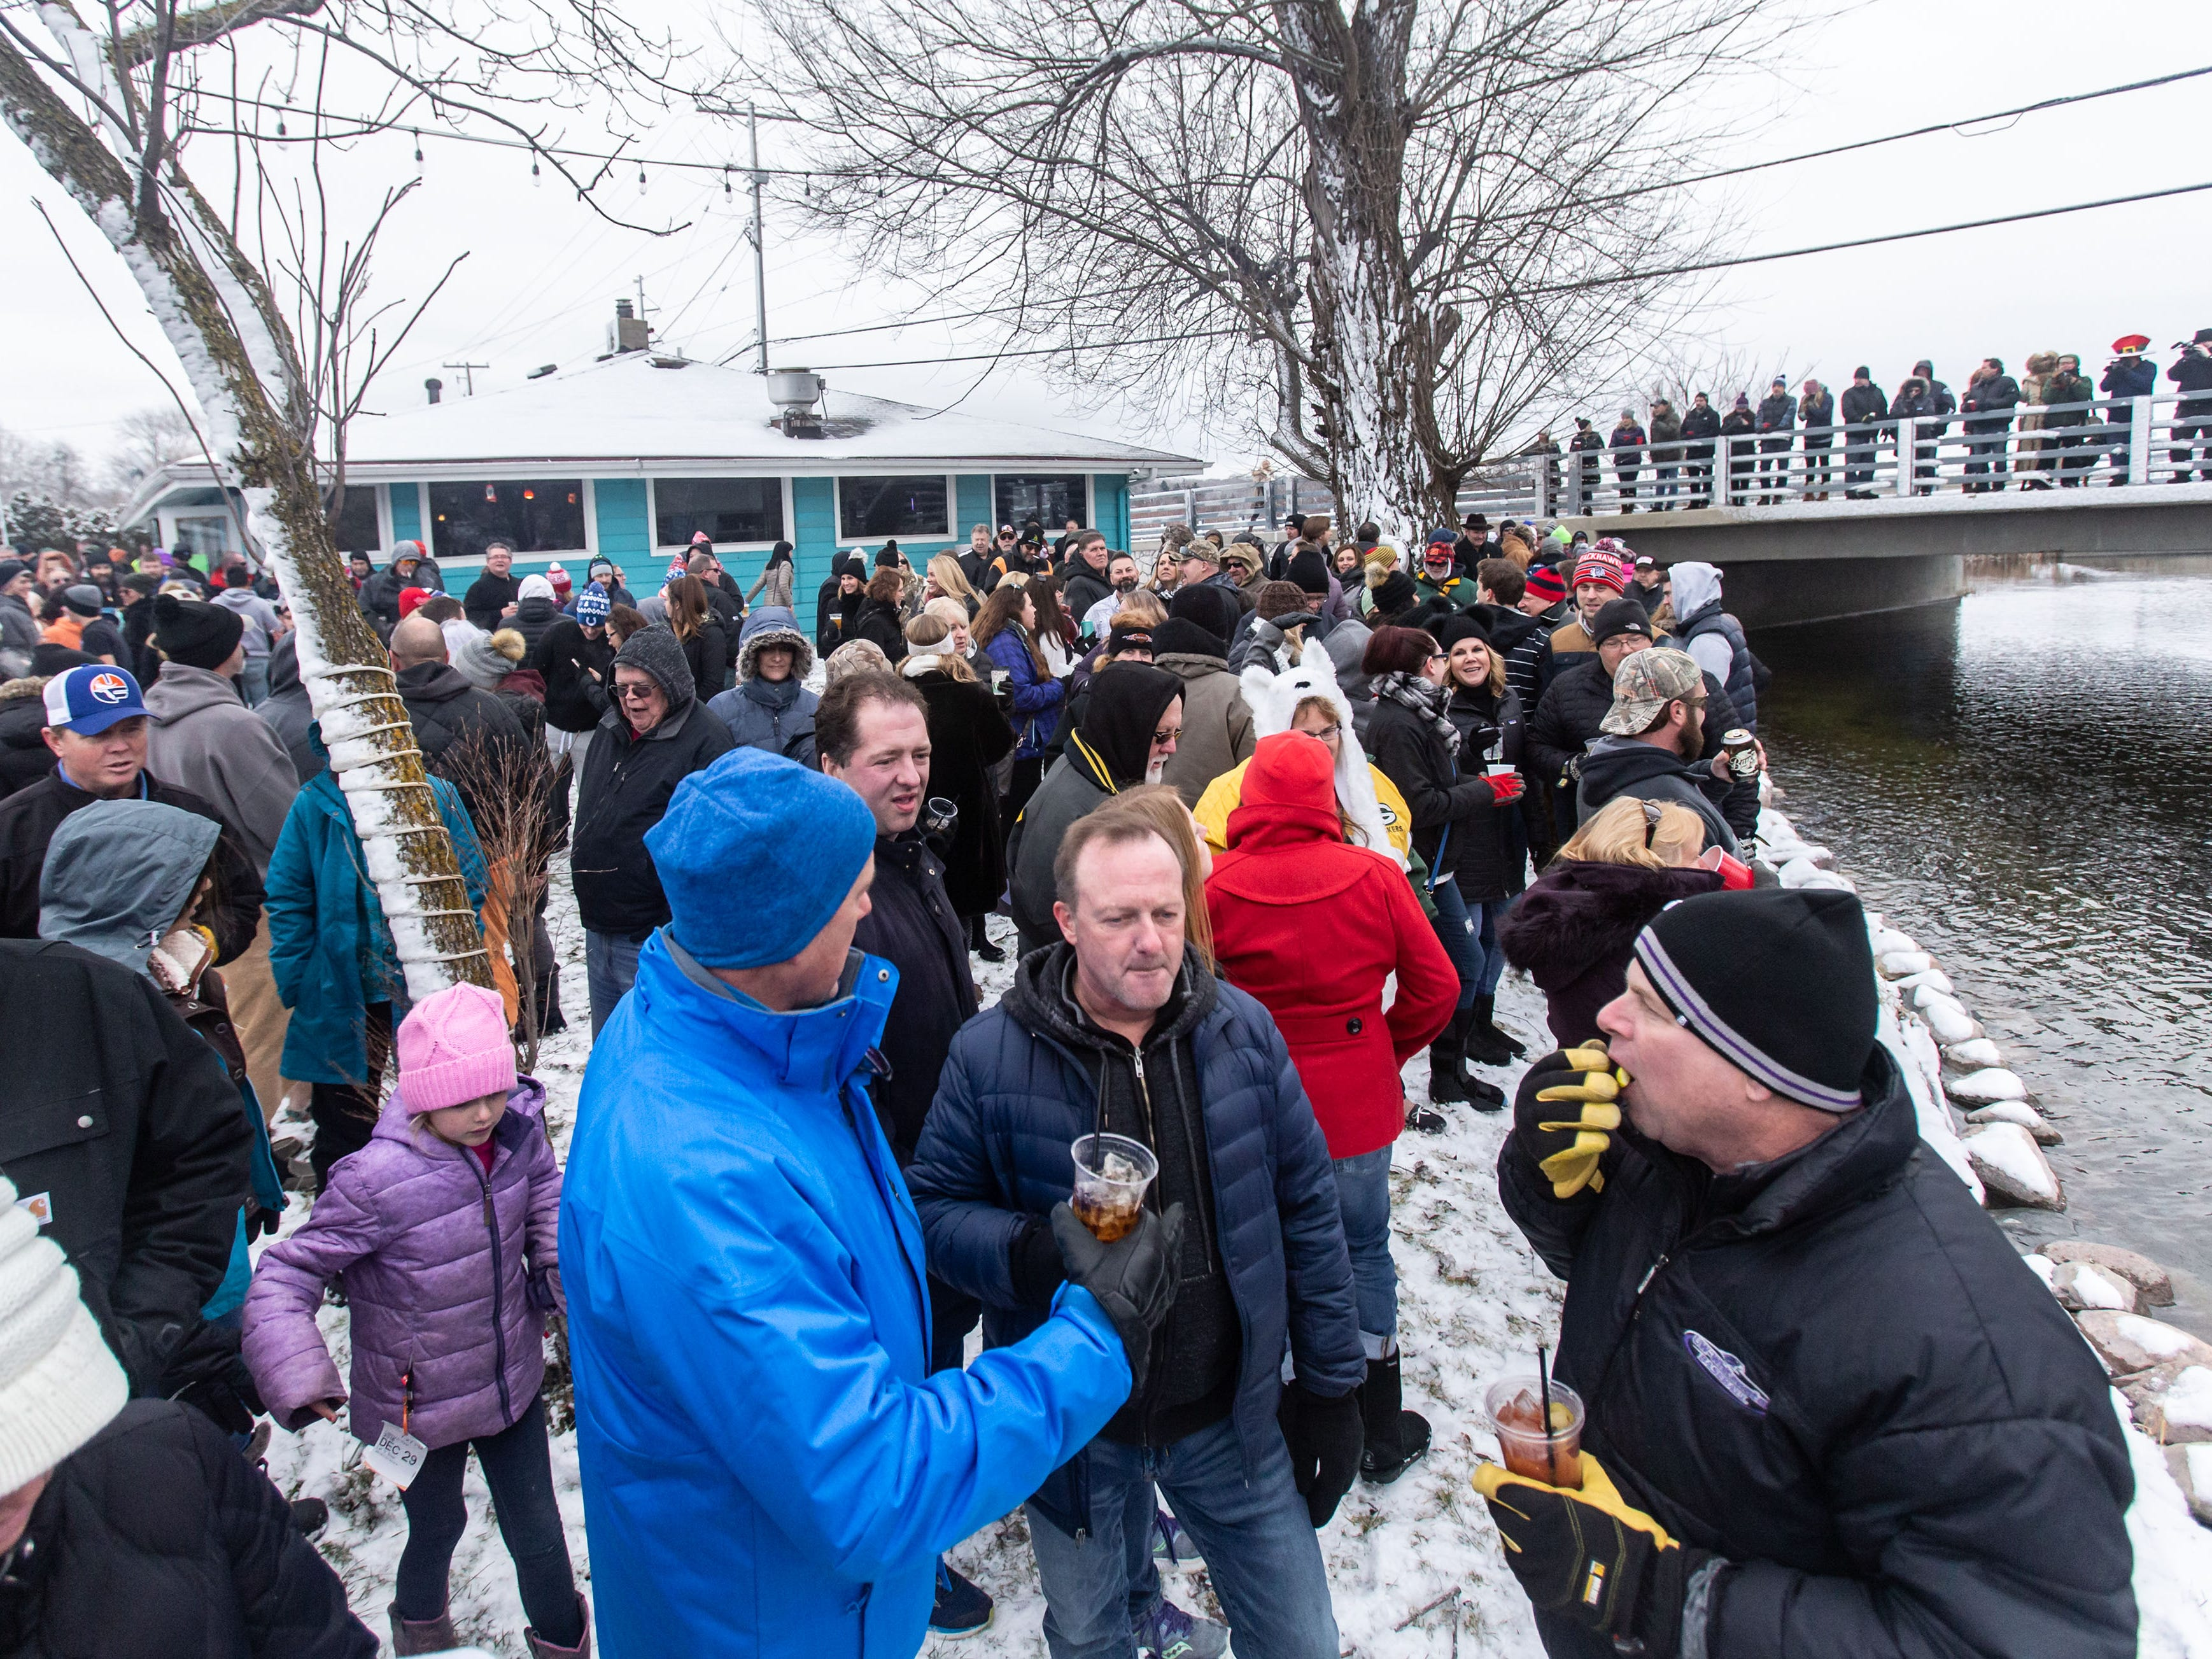 Hundreds of spectators gather to watch the annual Polar Plunge at Panga Bar & Grill in Oconomowoc on Tuesday, Jan. 1, 2019. Funds raised from this year's plunge will benefit research efforts of the Alzheimer's Association.